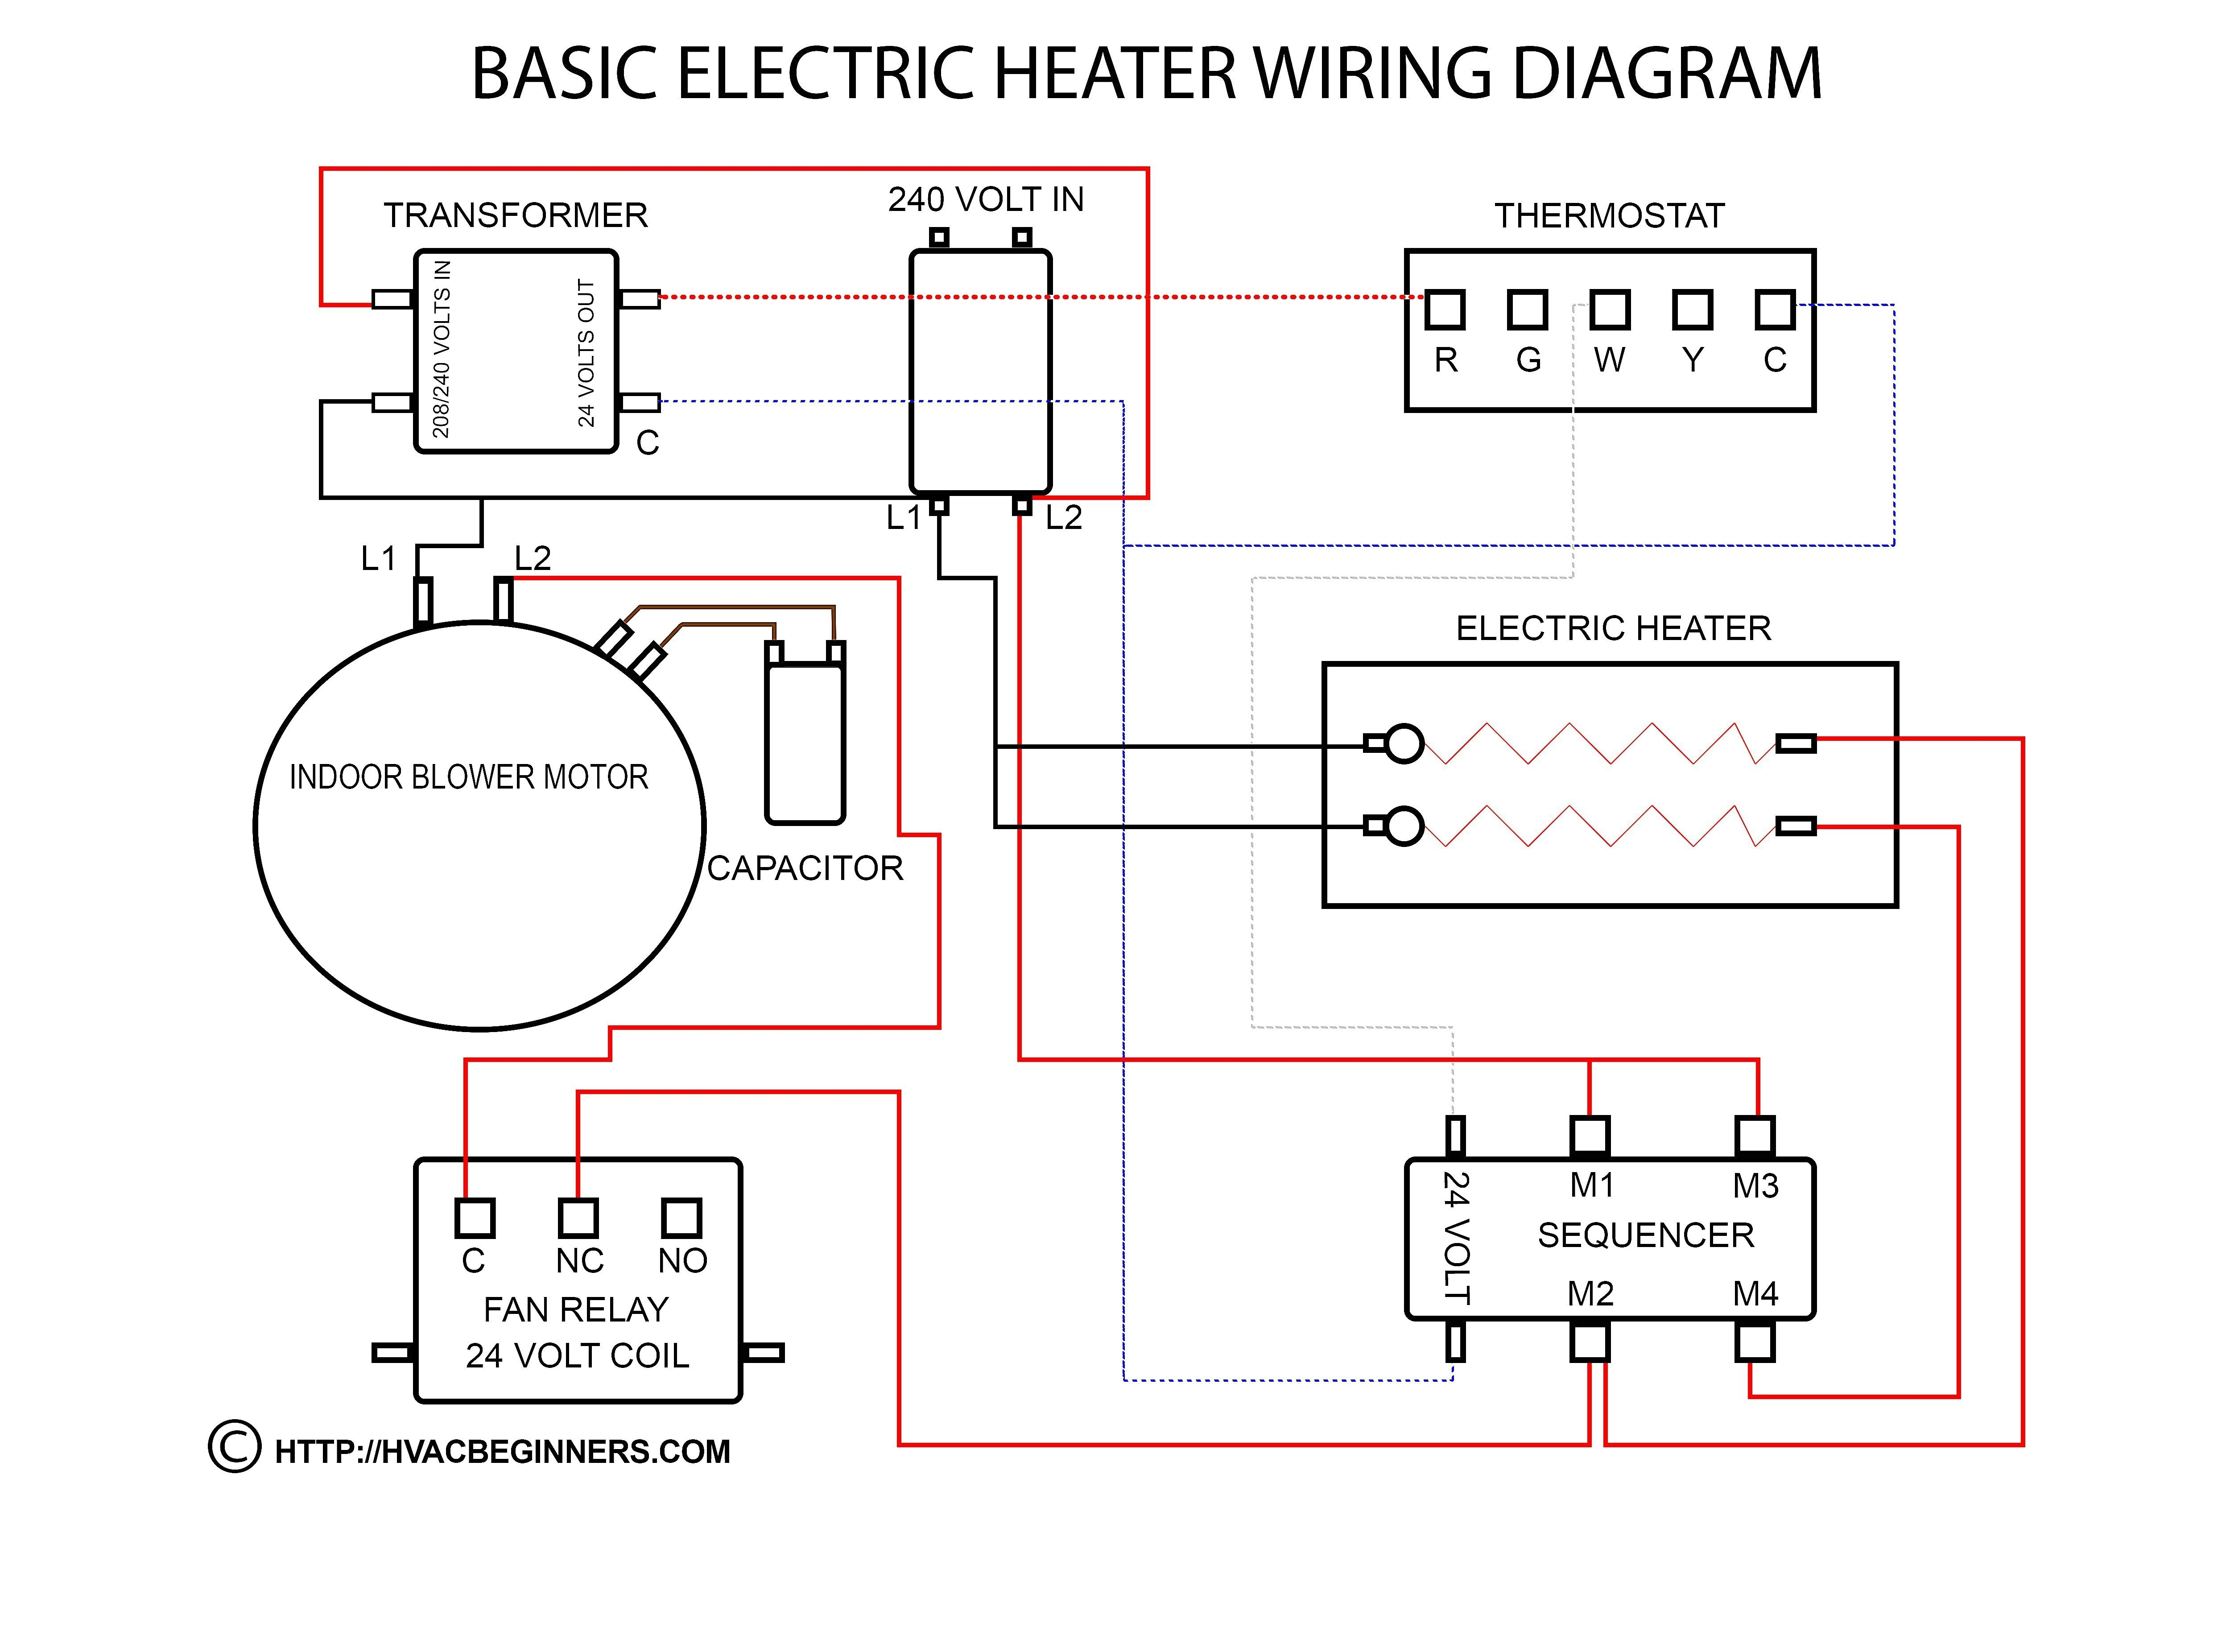 Pw50 Wire Diagram Volt Ohms Electric Wiring Diagram